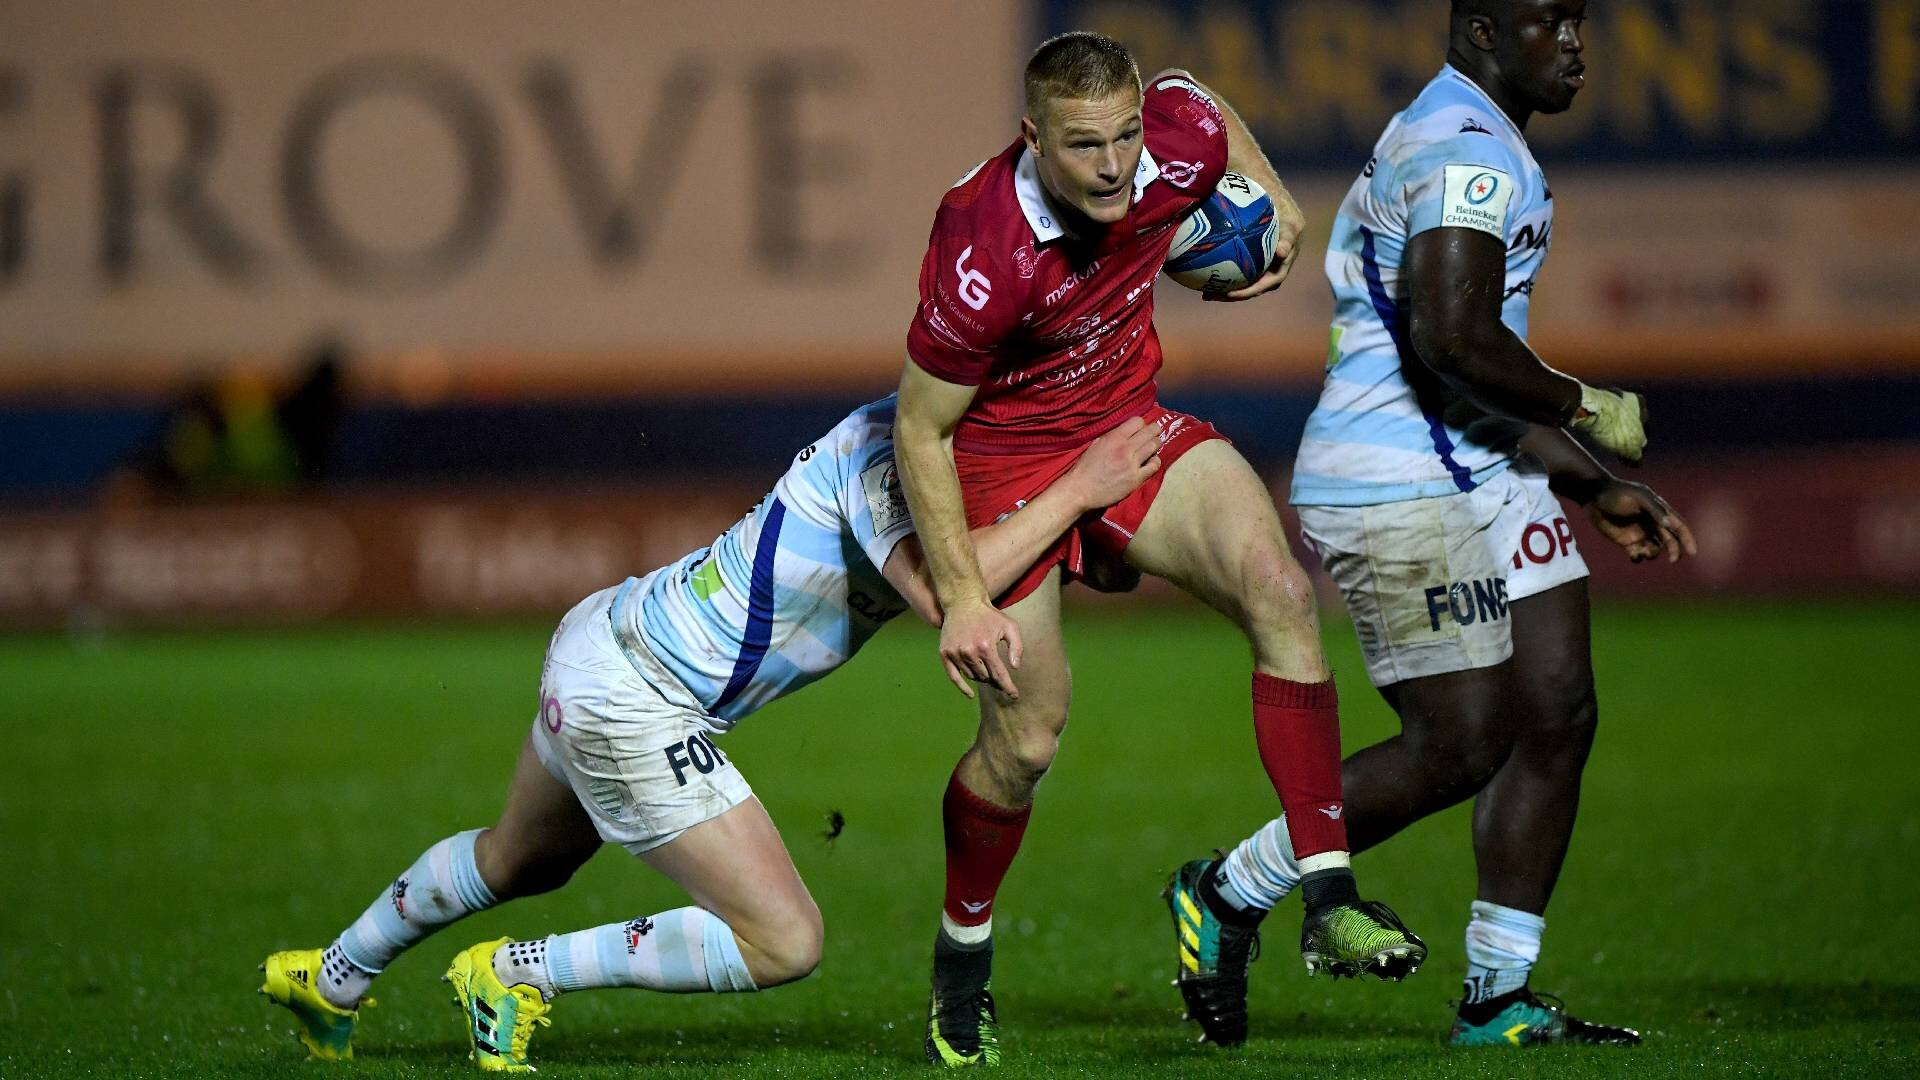 'I've been thinking about this moment for a long time': Turn of the 'JMac' as Wales welcomes Johnny McNicholl to Six Nations stage